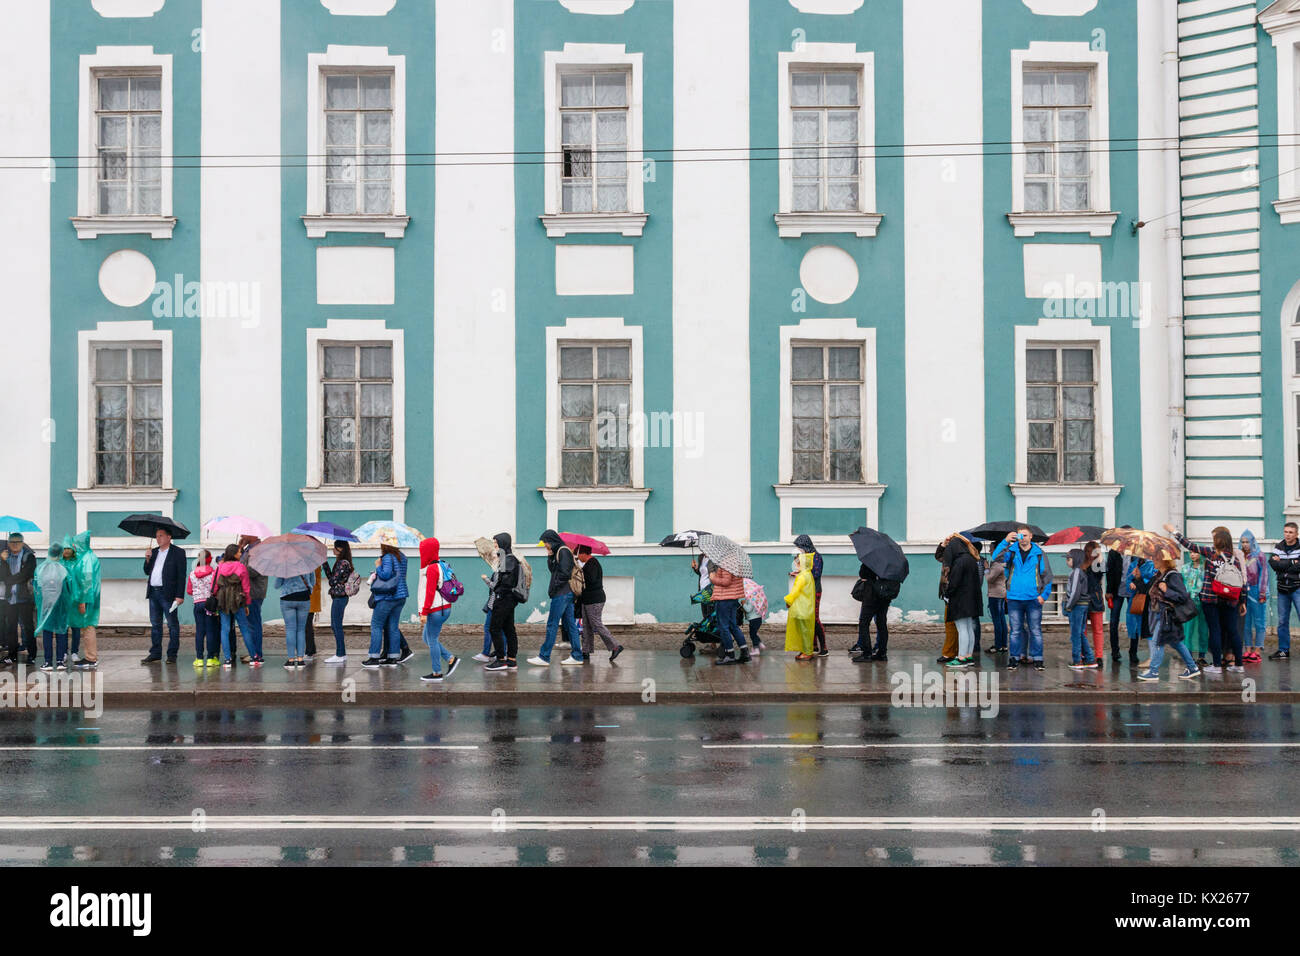 Tourists waiting in line for the Kunstkamera museum on a rainy day. Saint Petersburg, Russia. - Stock Image